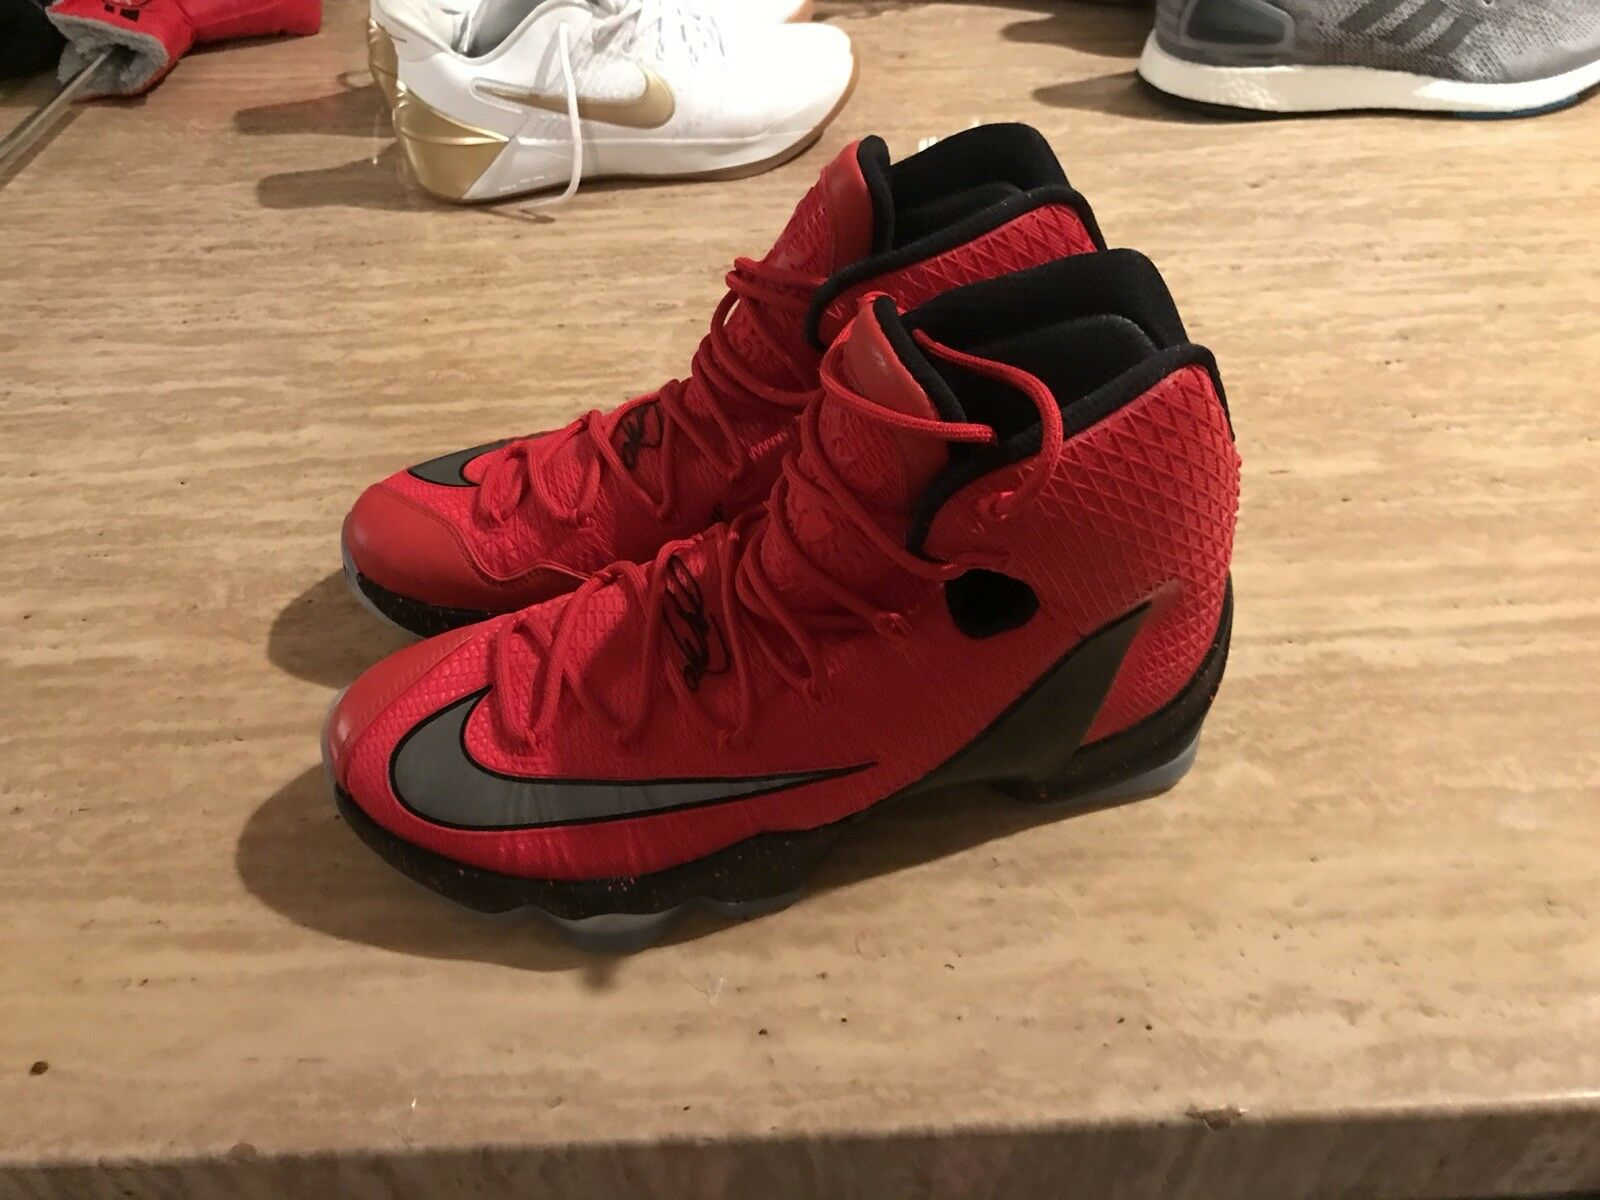 quality design 0ab0d 91703 Offers On Nike LeBron XIII 13 Elite James University Red Black (831923-606)